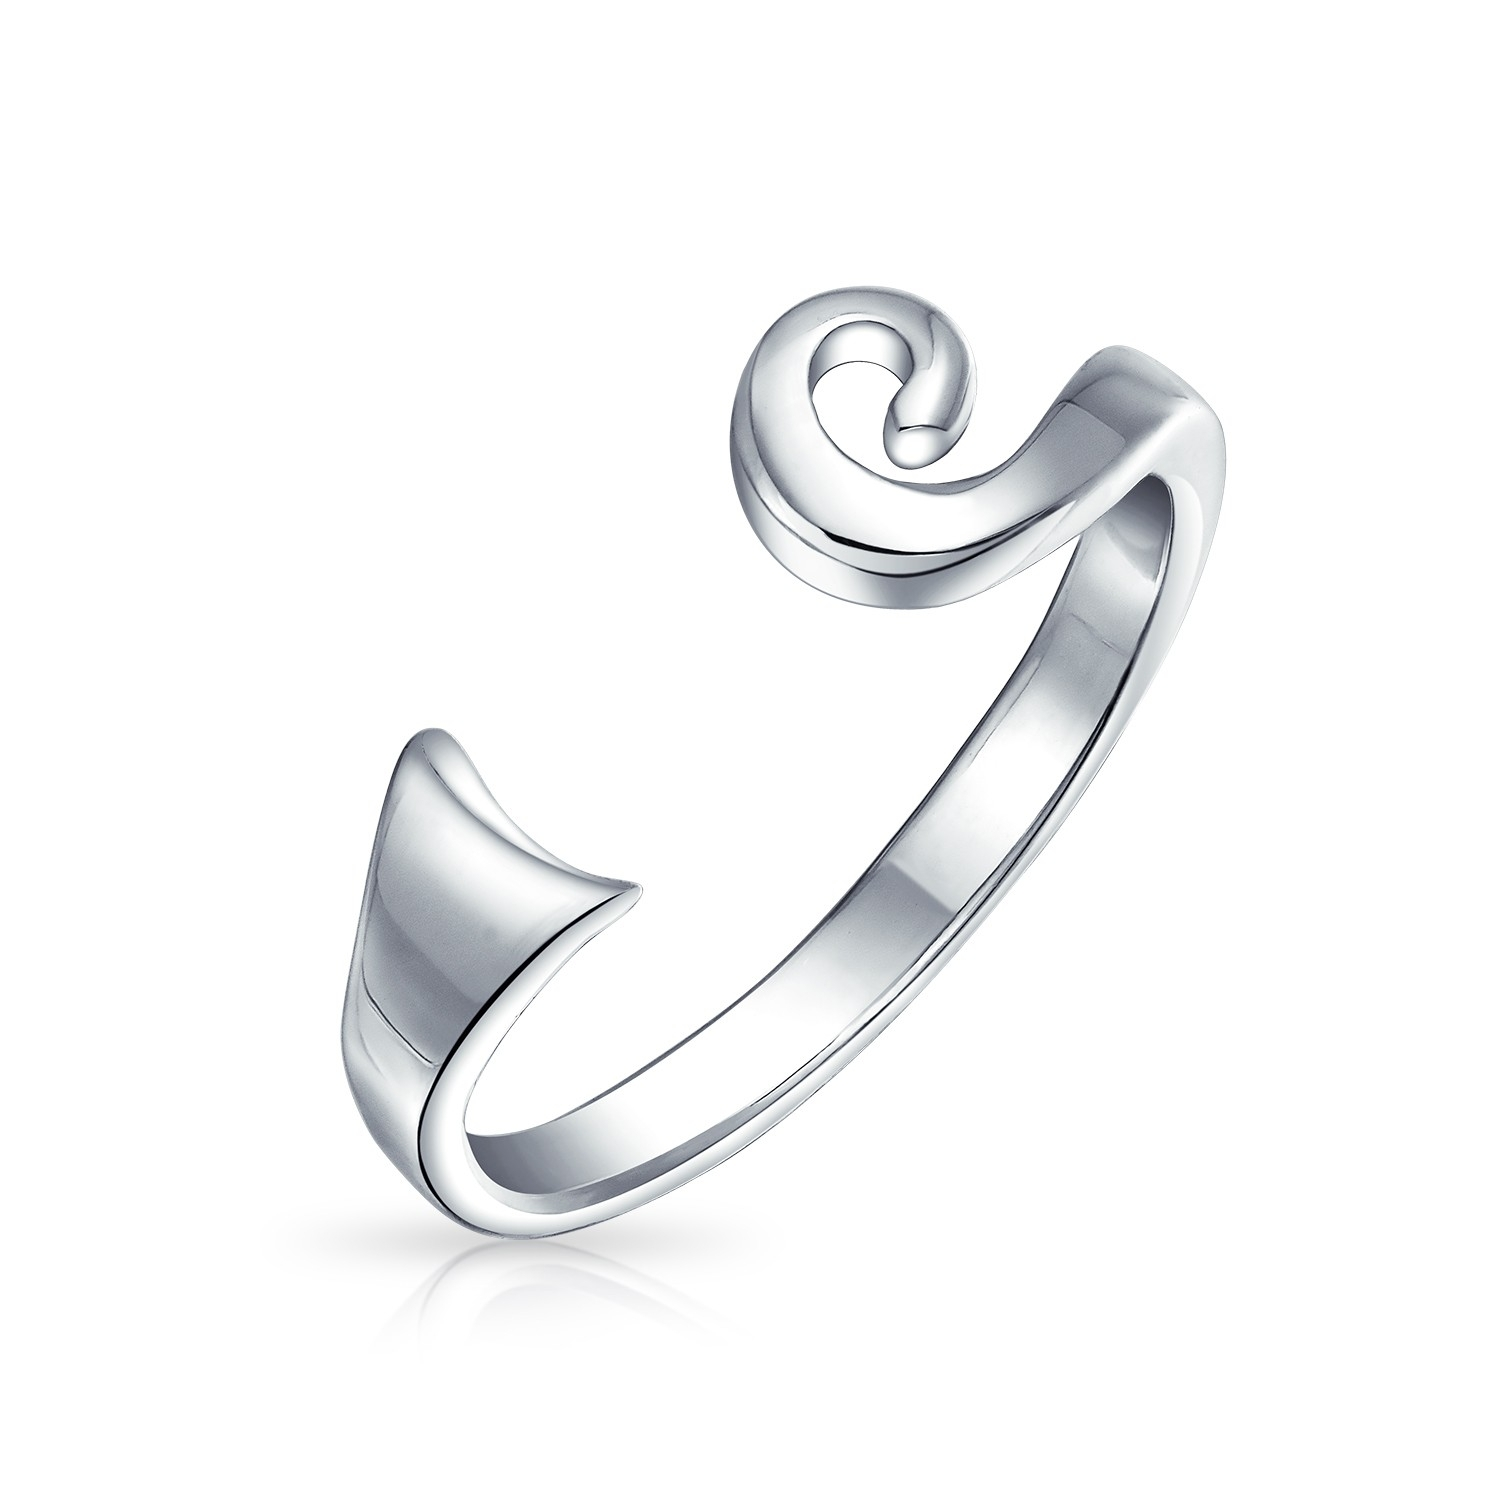 Sterling Silver Celtic Spiral Midi Ring Toe Rings Adjustable Regarding Latest Celtic Toe Rings (View 11 of 15)